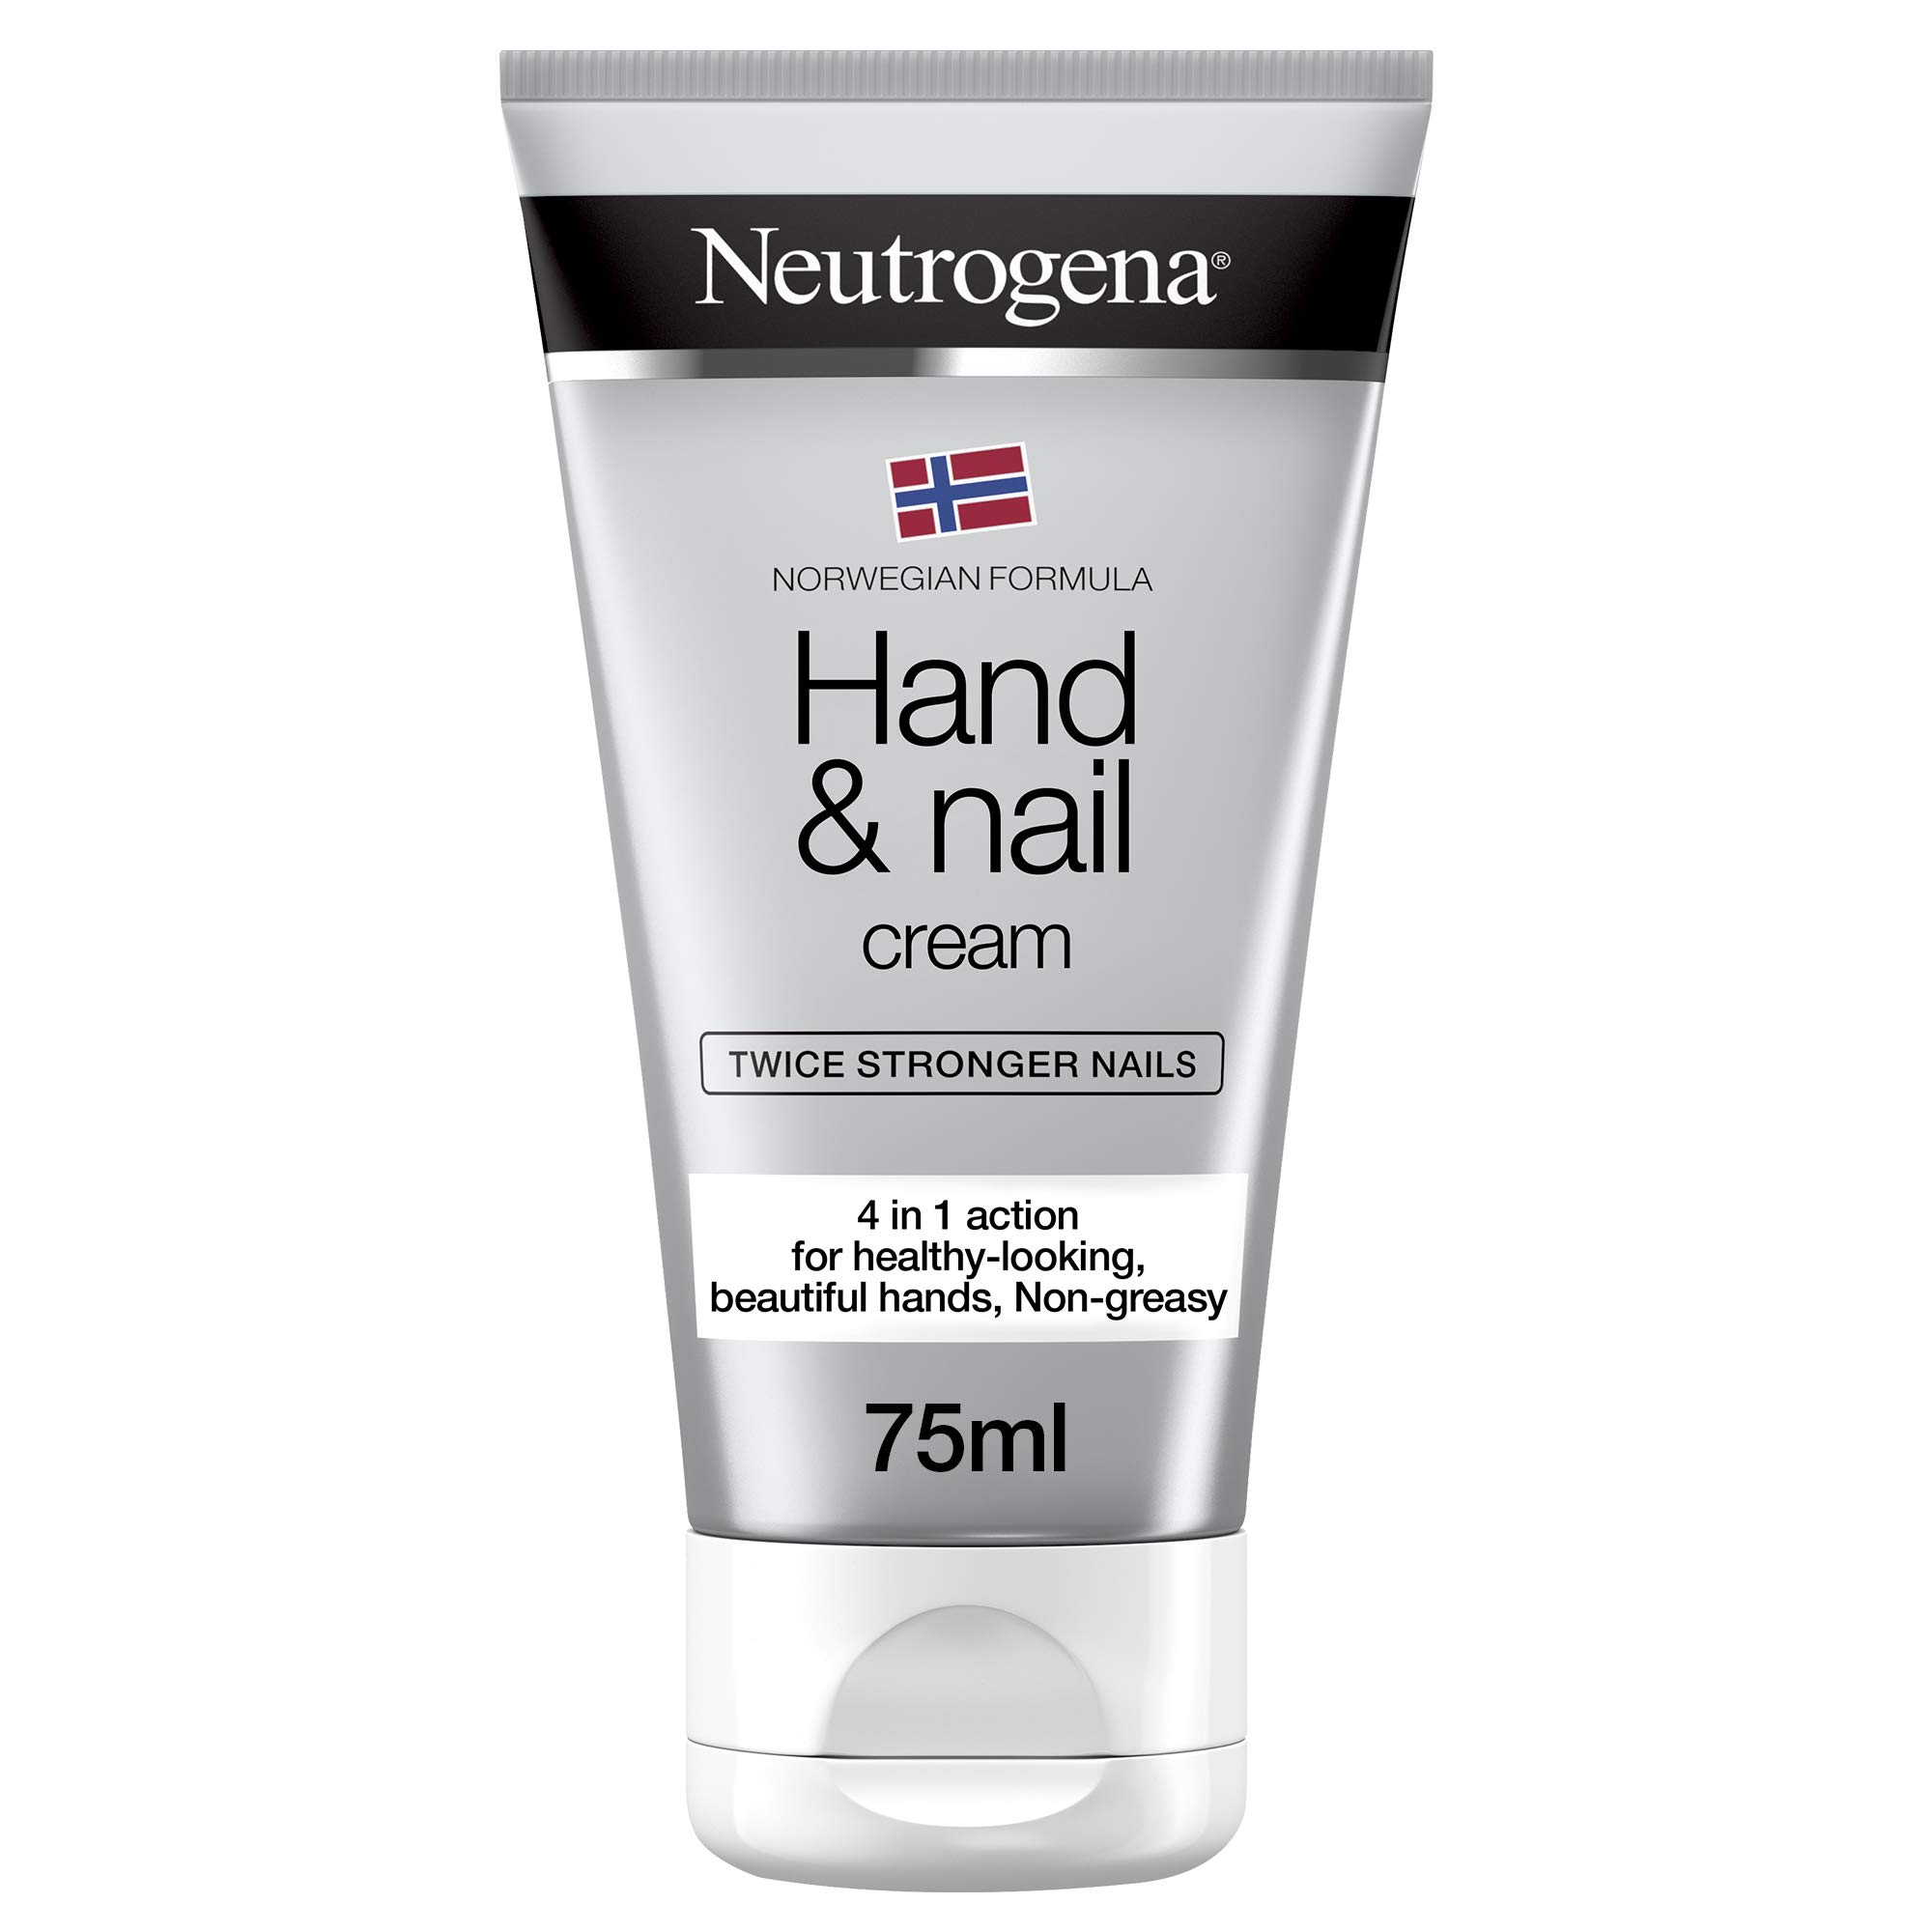 Neutrogena Norwegian Formula Hand and Nail Cream 75 ml